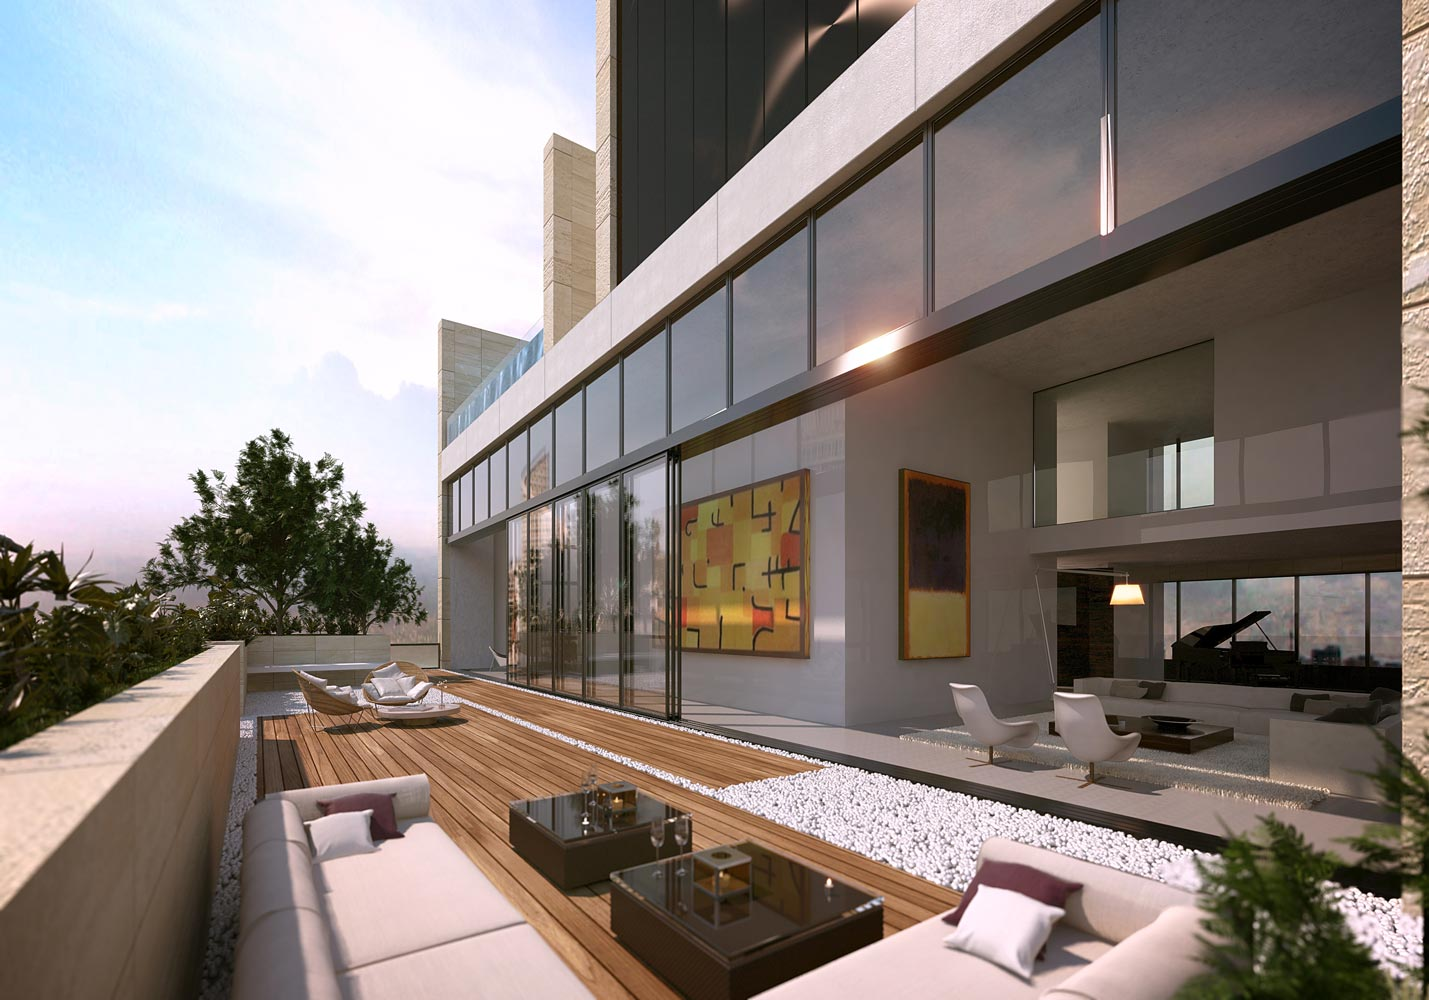 3beirut by foster and partners for Terrace beirut